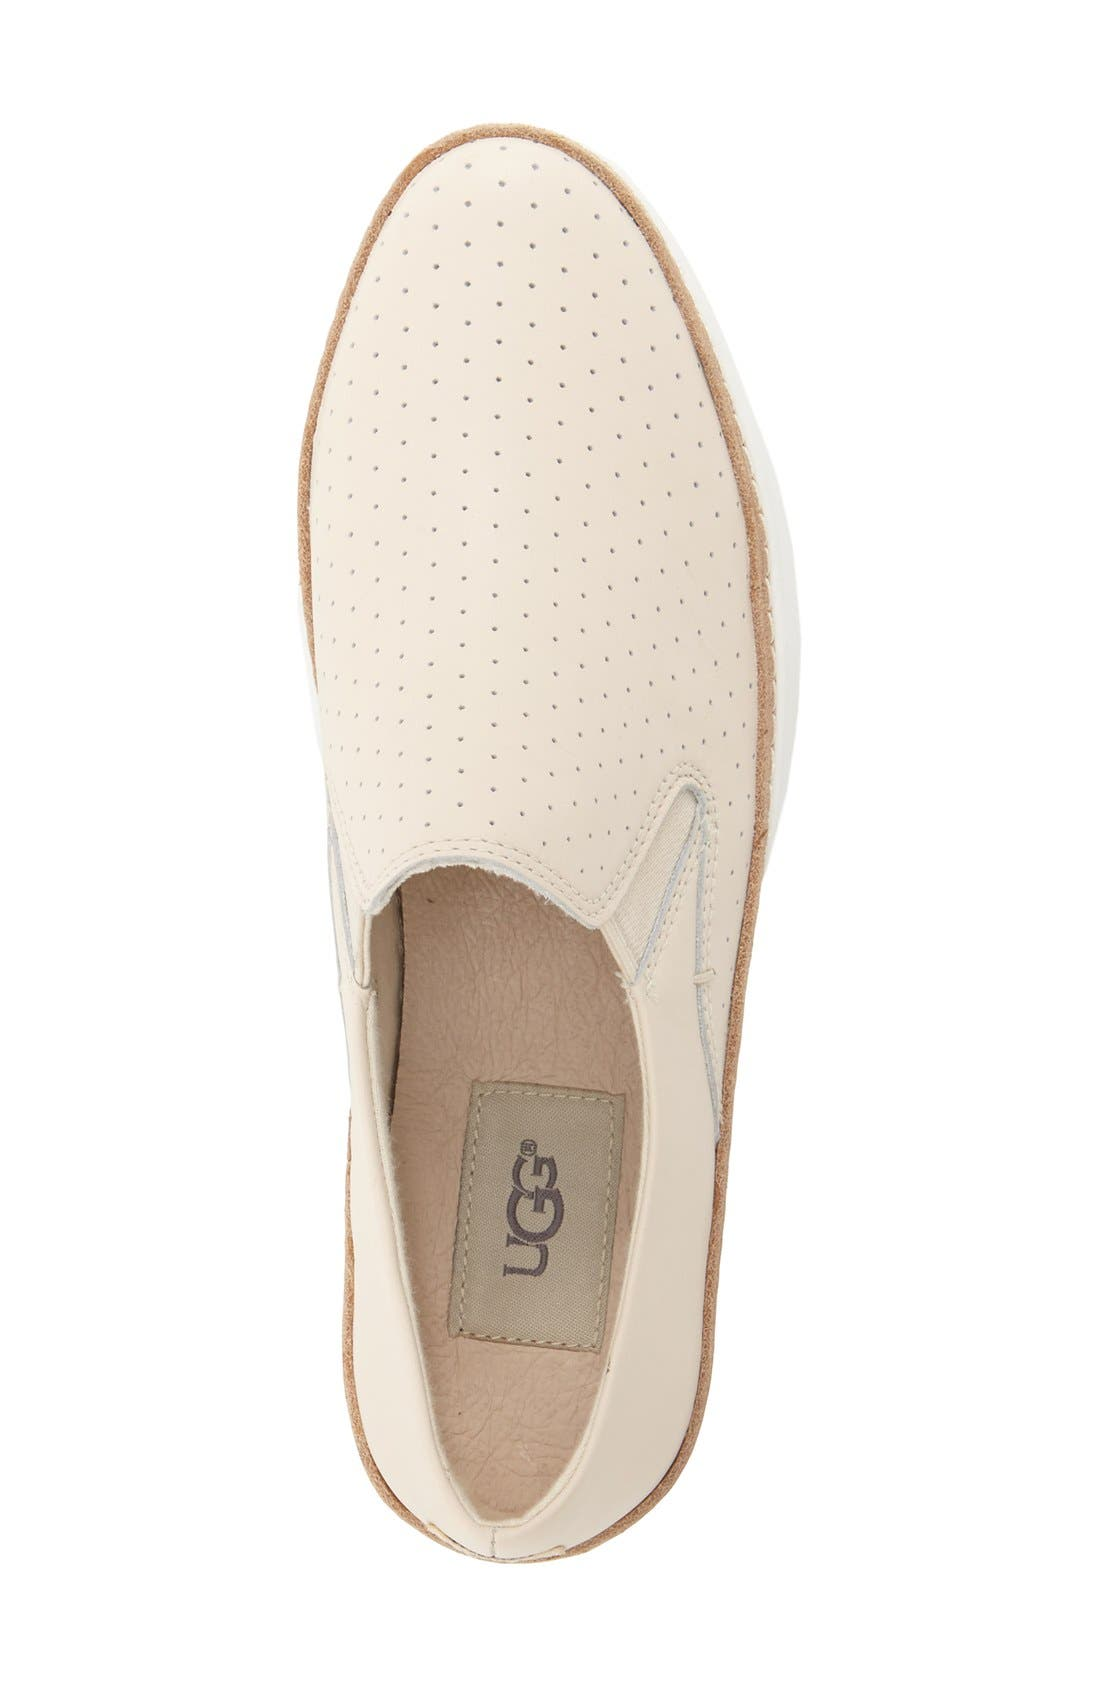 Alternate Image 3  - UGG® 'Keile' Perforated Sneaker (Women)